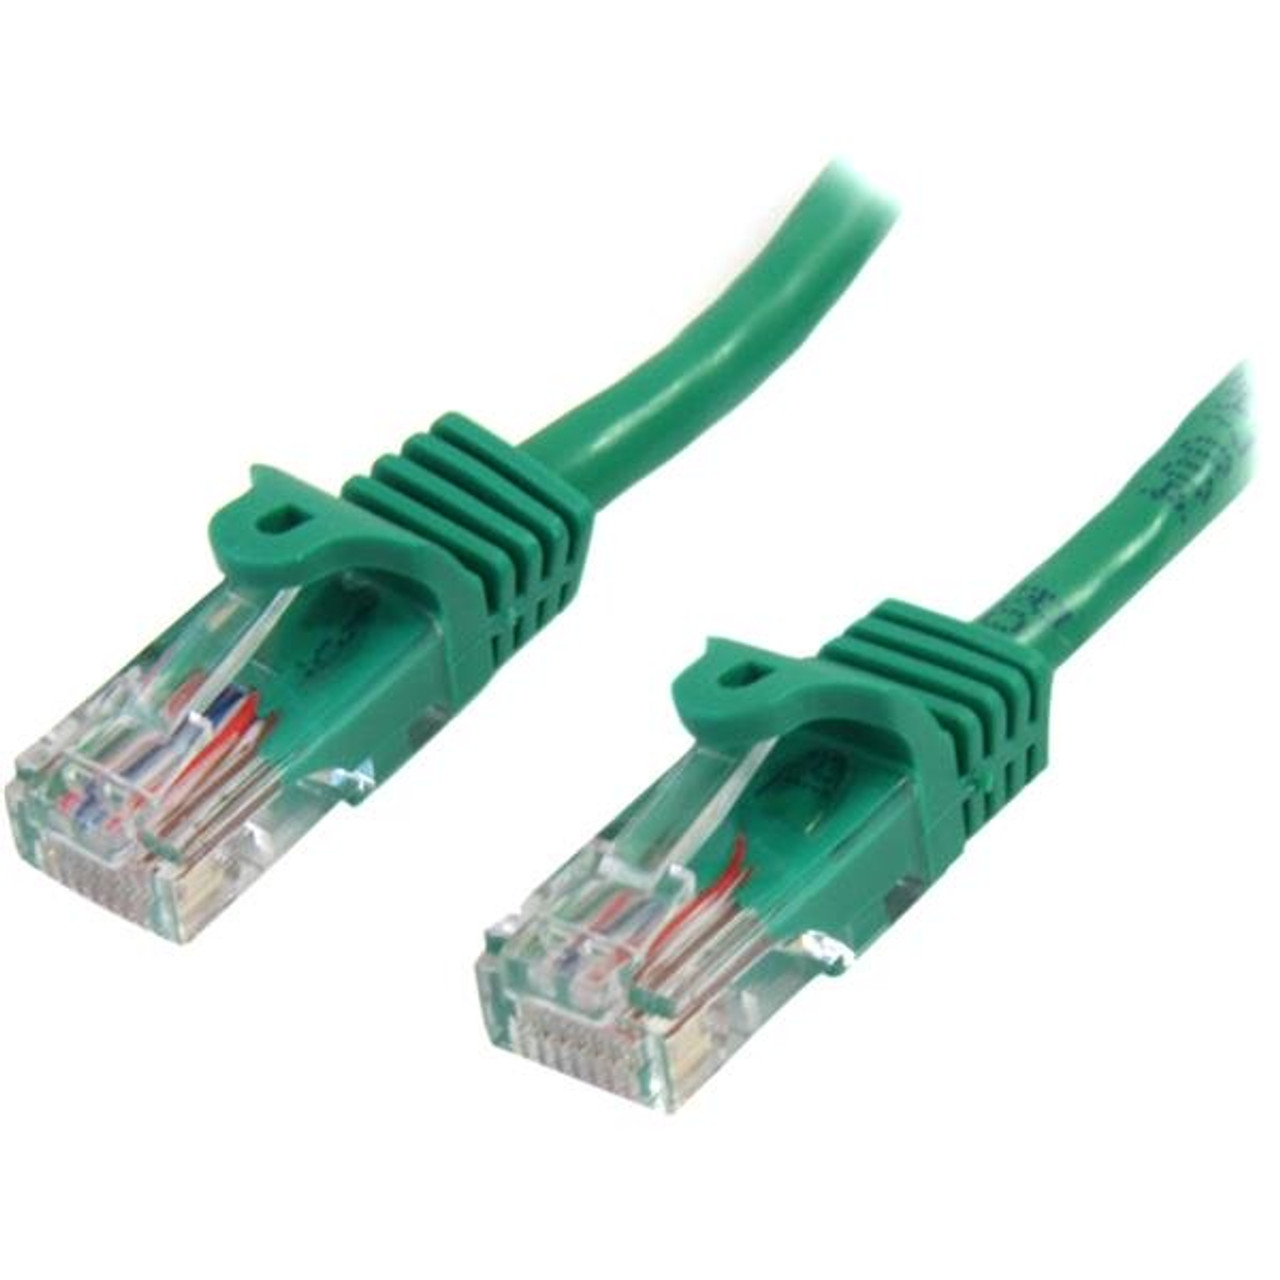 Image for StarTech 1m Cat 5e Green Snagless Ethernet Patch Cable CX Computer Superstore